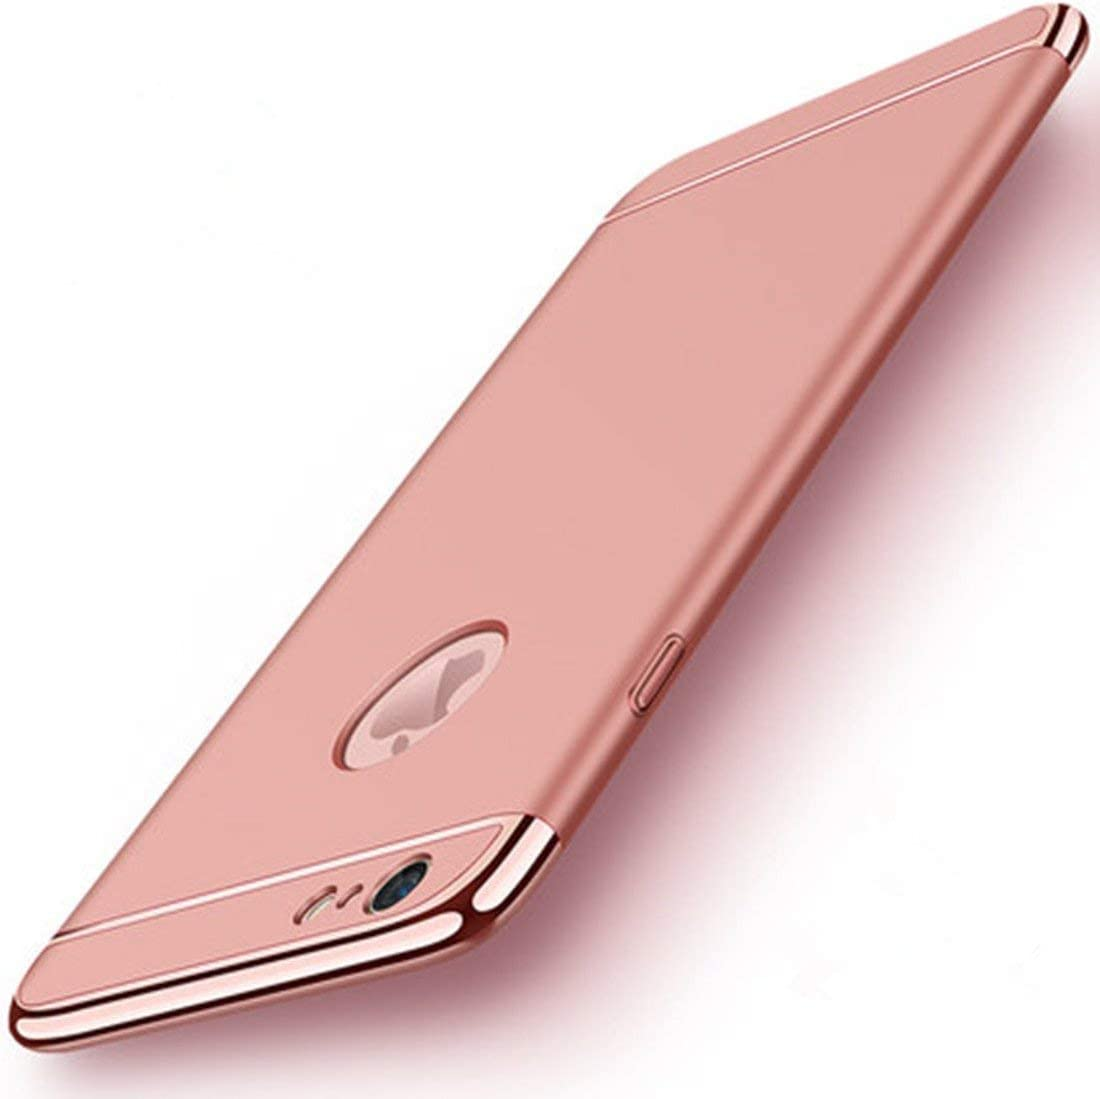 shenzkeji Protective Hard Case for Apple iPhone 6 Plus and iPhone 6s Plus, Shockproof, Dustproof, Anti-Scratch, Easy to Install and Remove(5.5 Inch, Rose Gold)